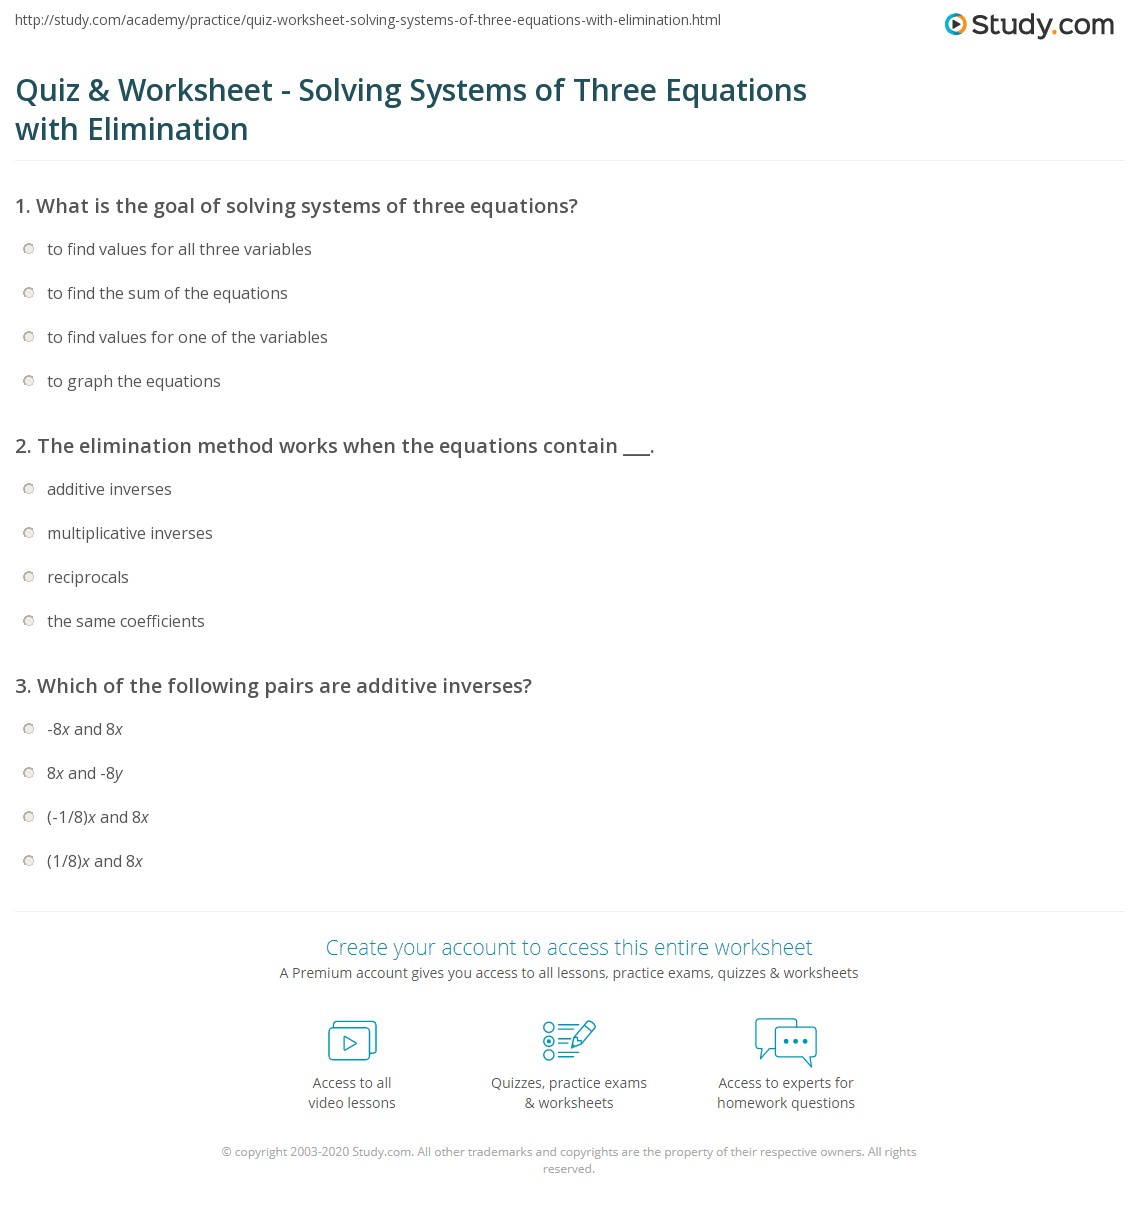 How To Solve Systems Of Three Equations Using Elimination